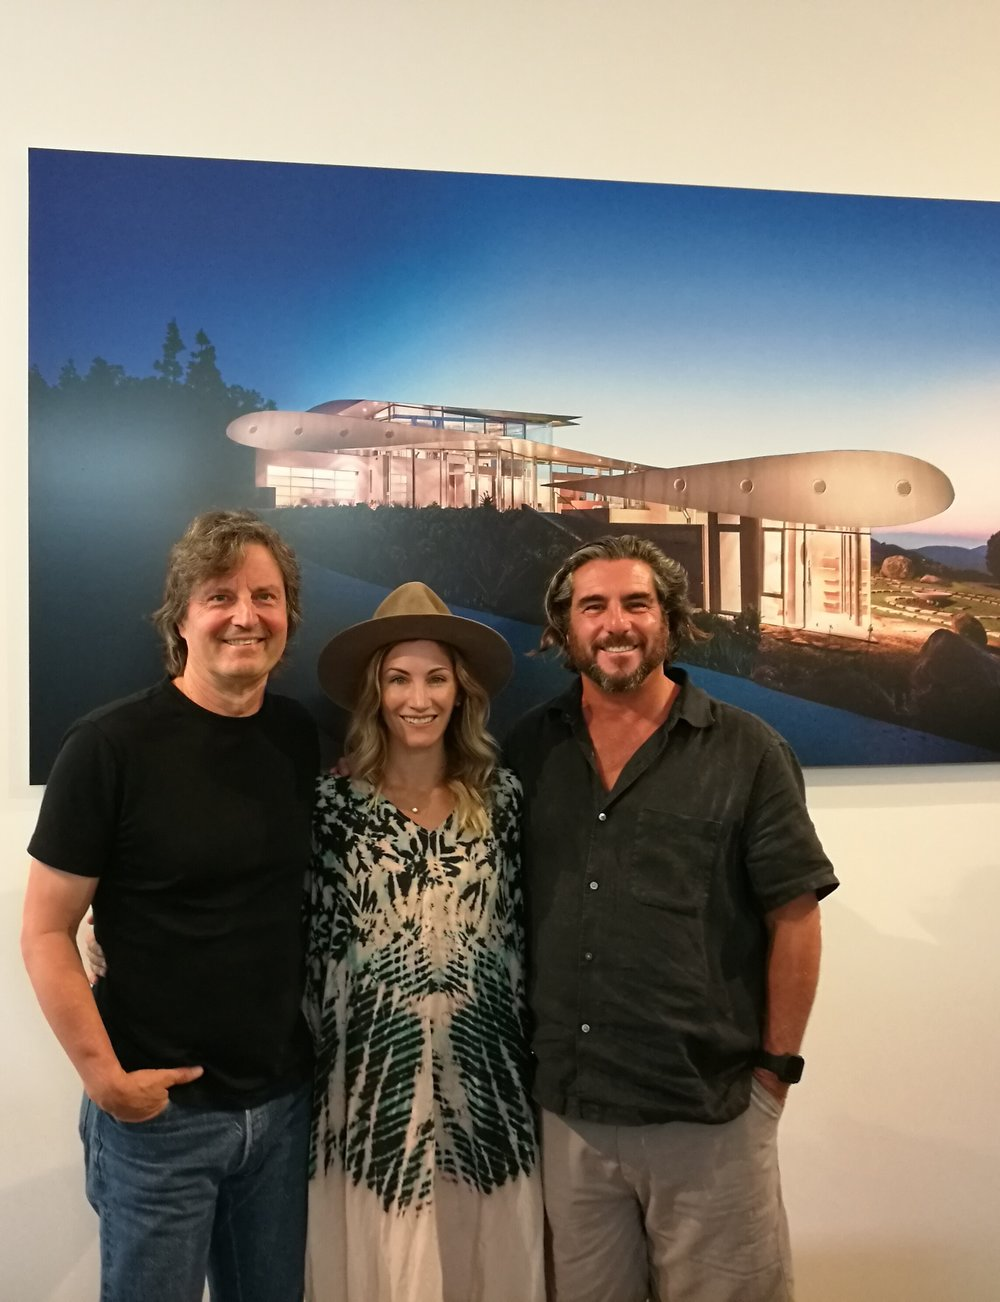 Tom Kundig, of Olson Kundig, Venice local, Kelly Furano, and David Hertz at SEA Studio